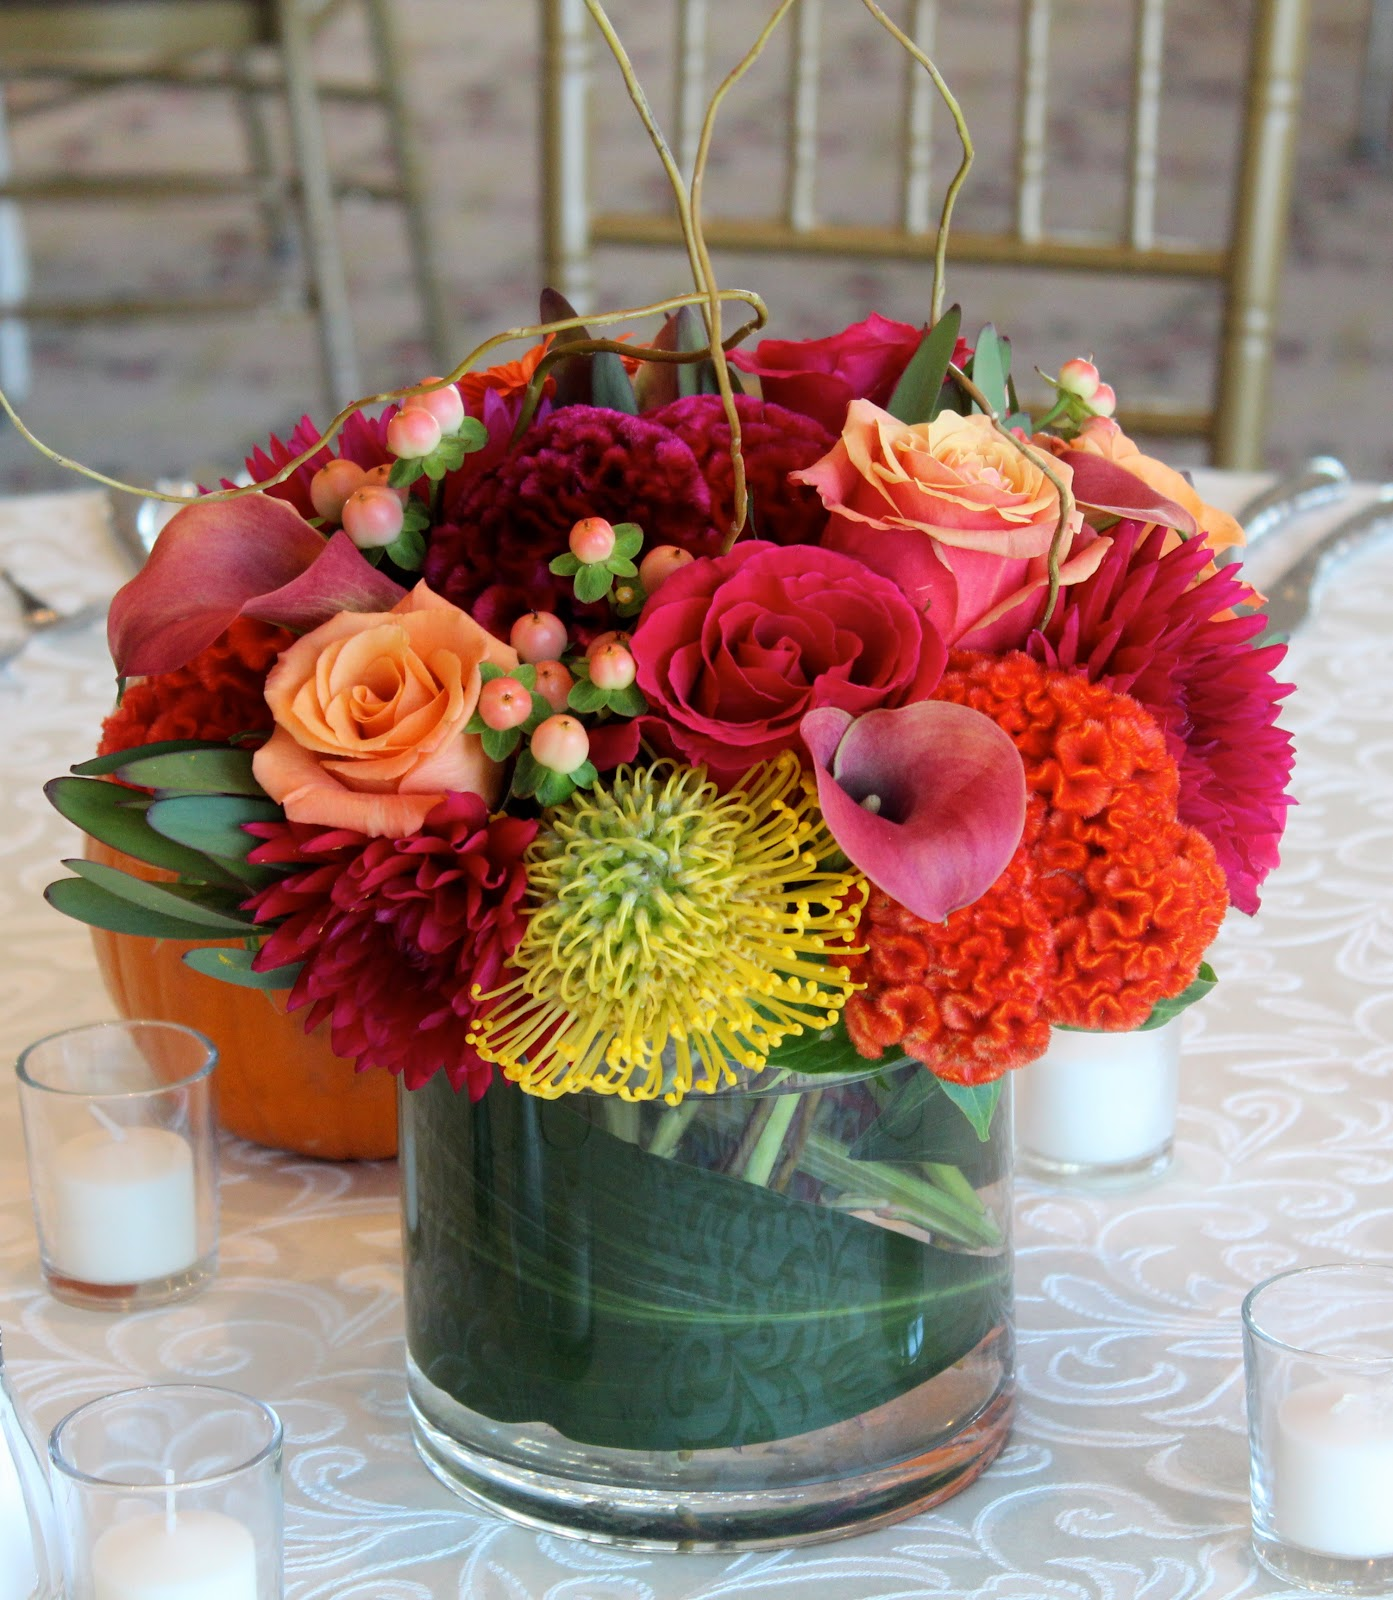 Wedding Flower Center Pieces: Allison Phalen Floral Design: Coreen & Brian: Granite